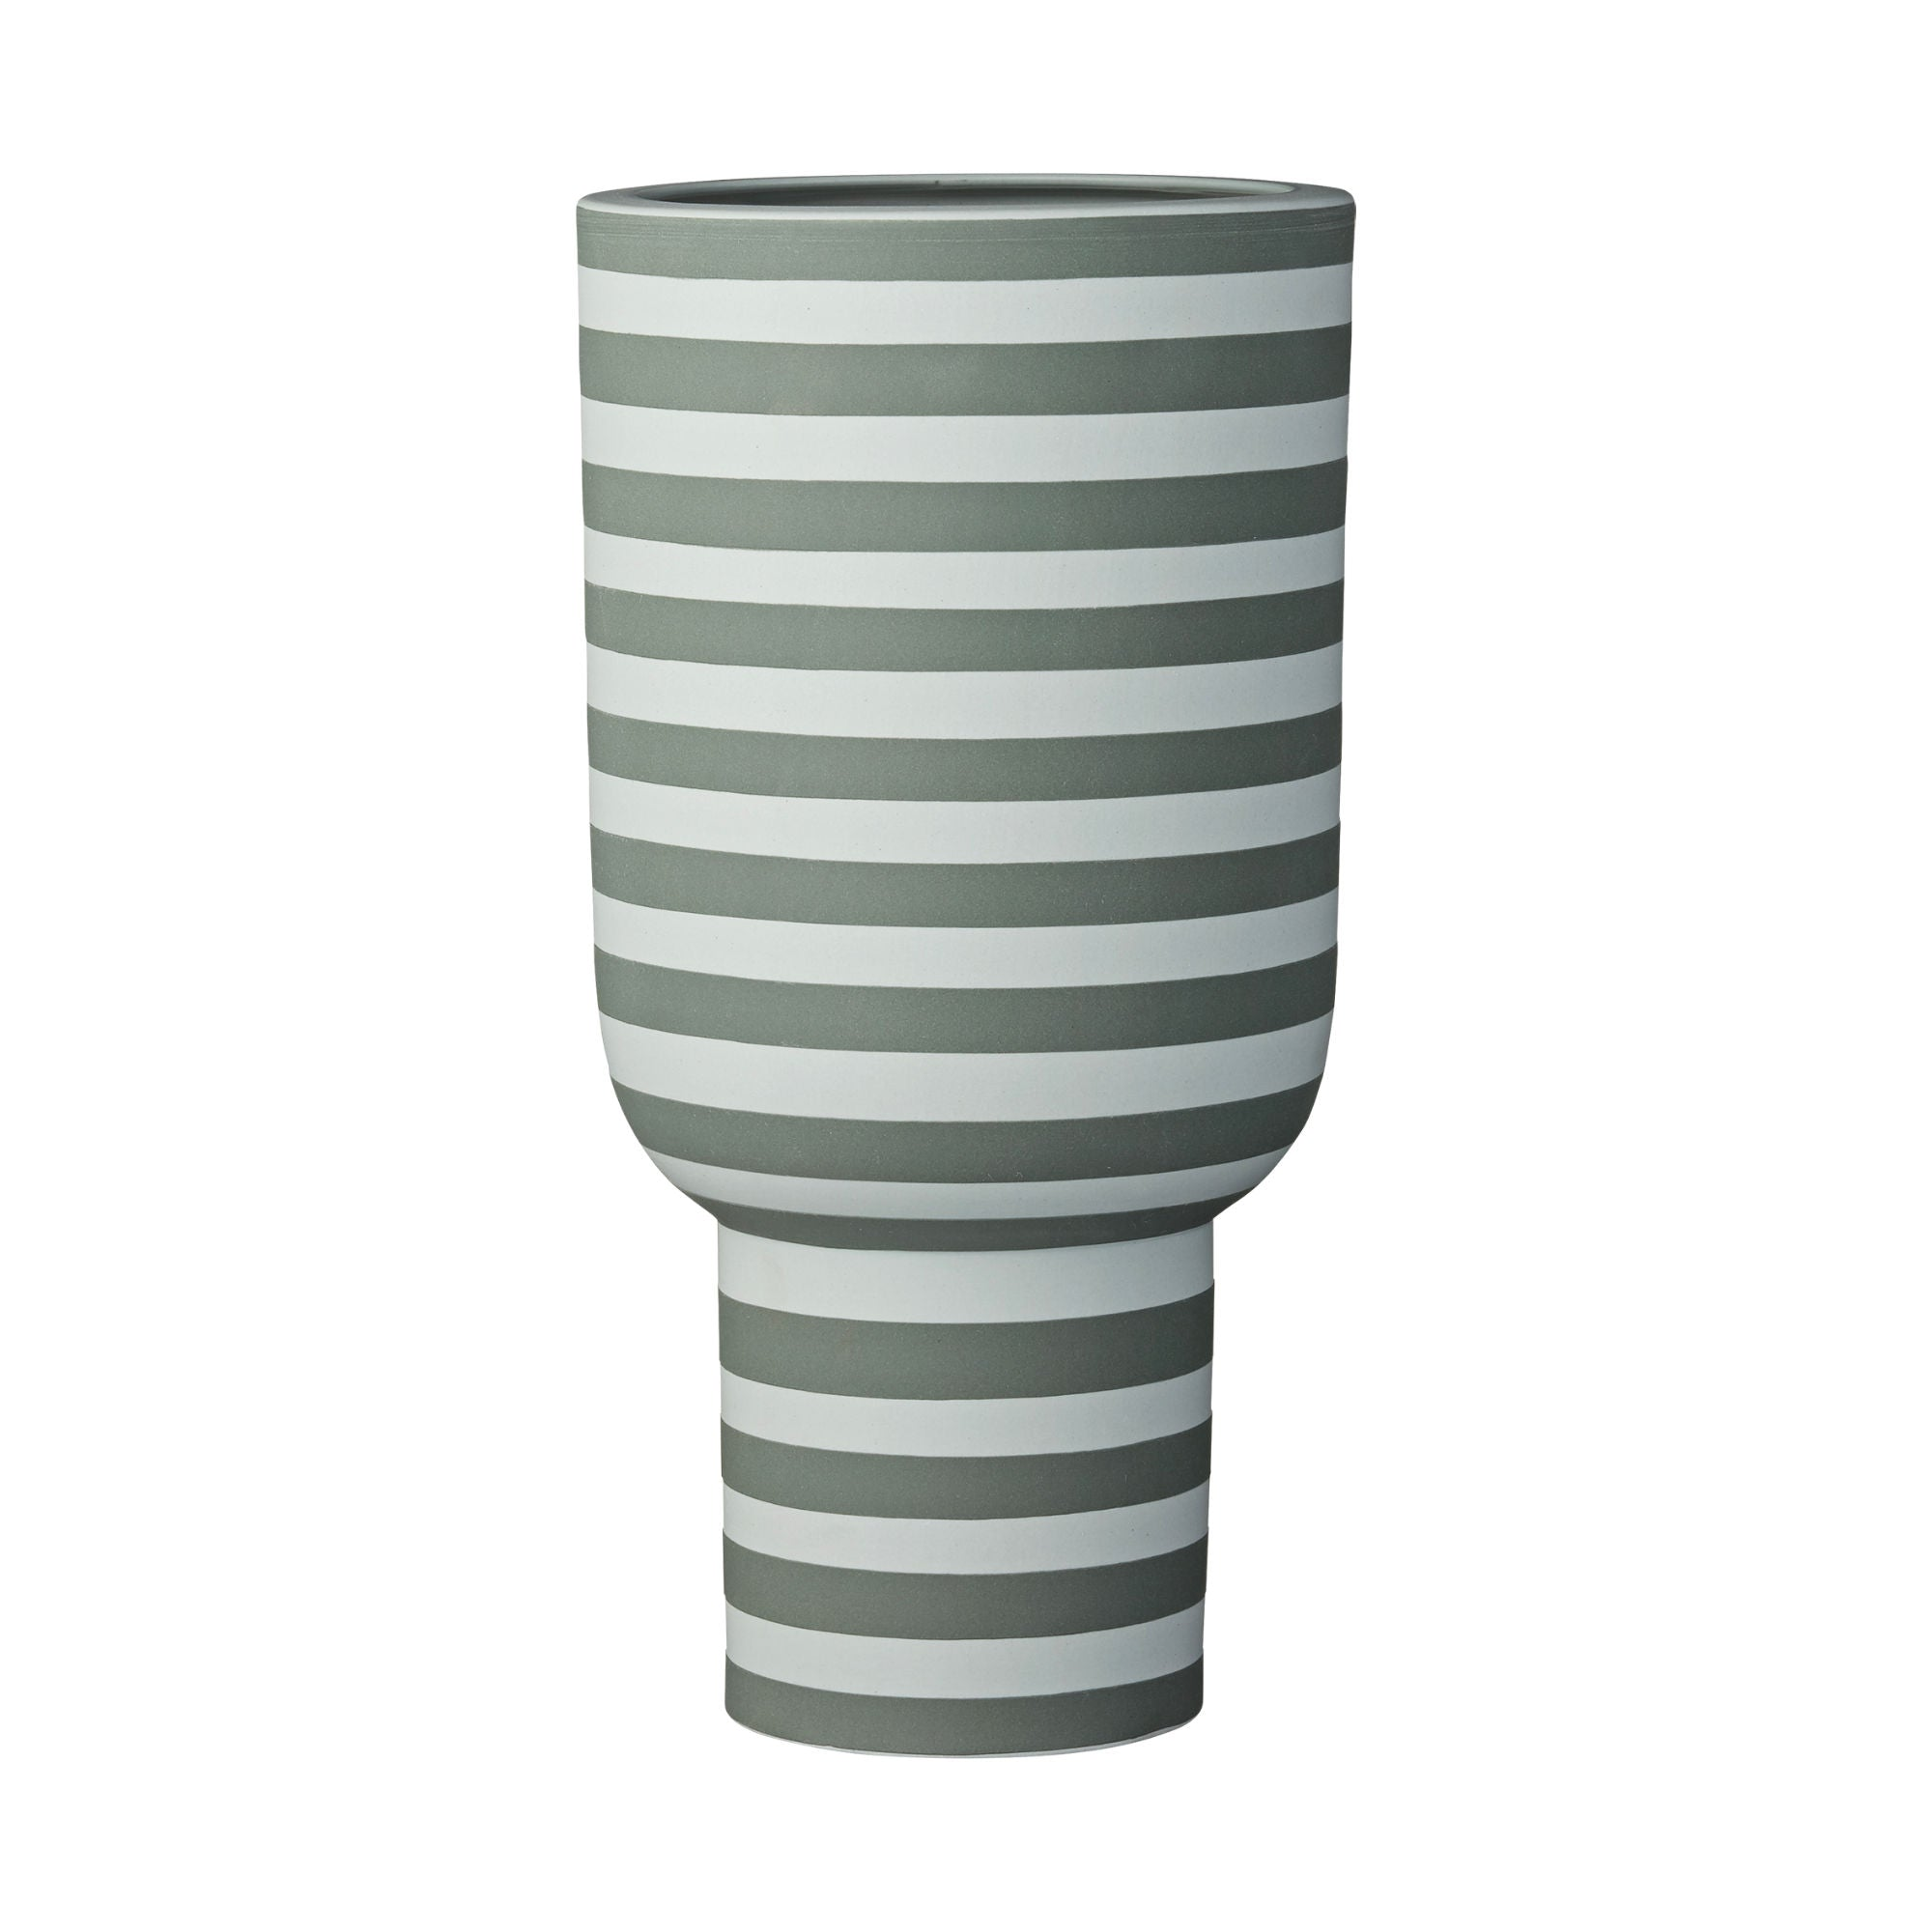 Aytm Varia Sculptural Vase , Dusty Green-Forest